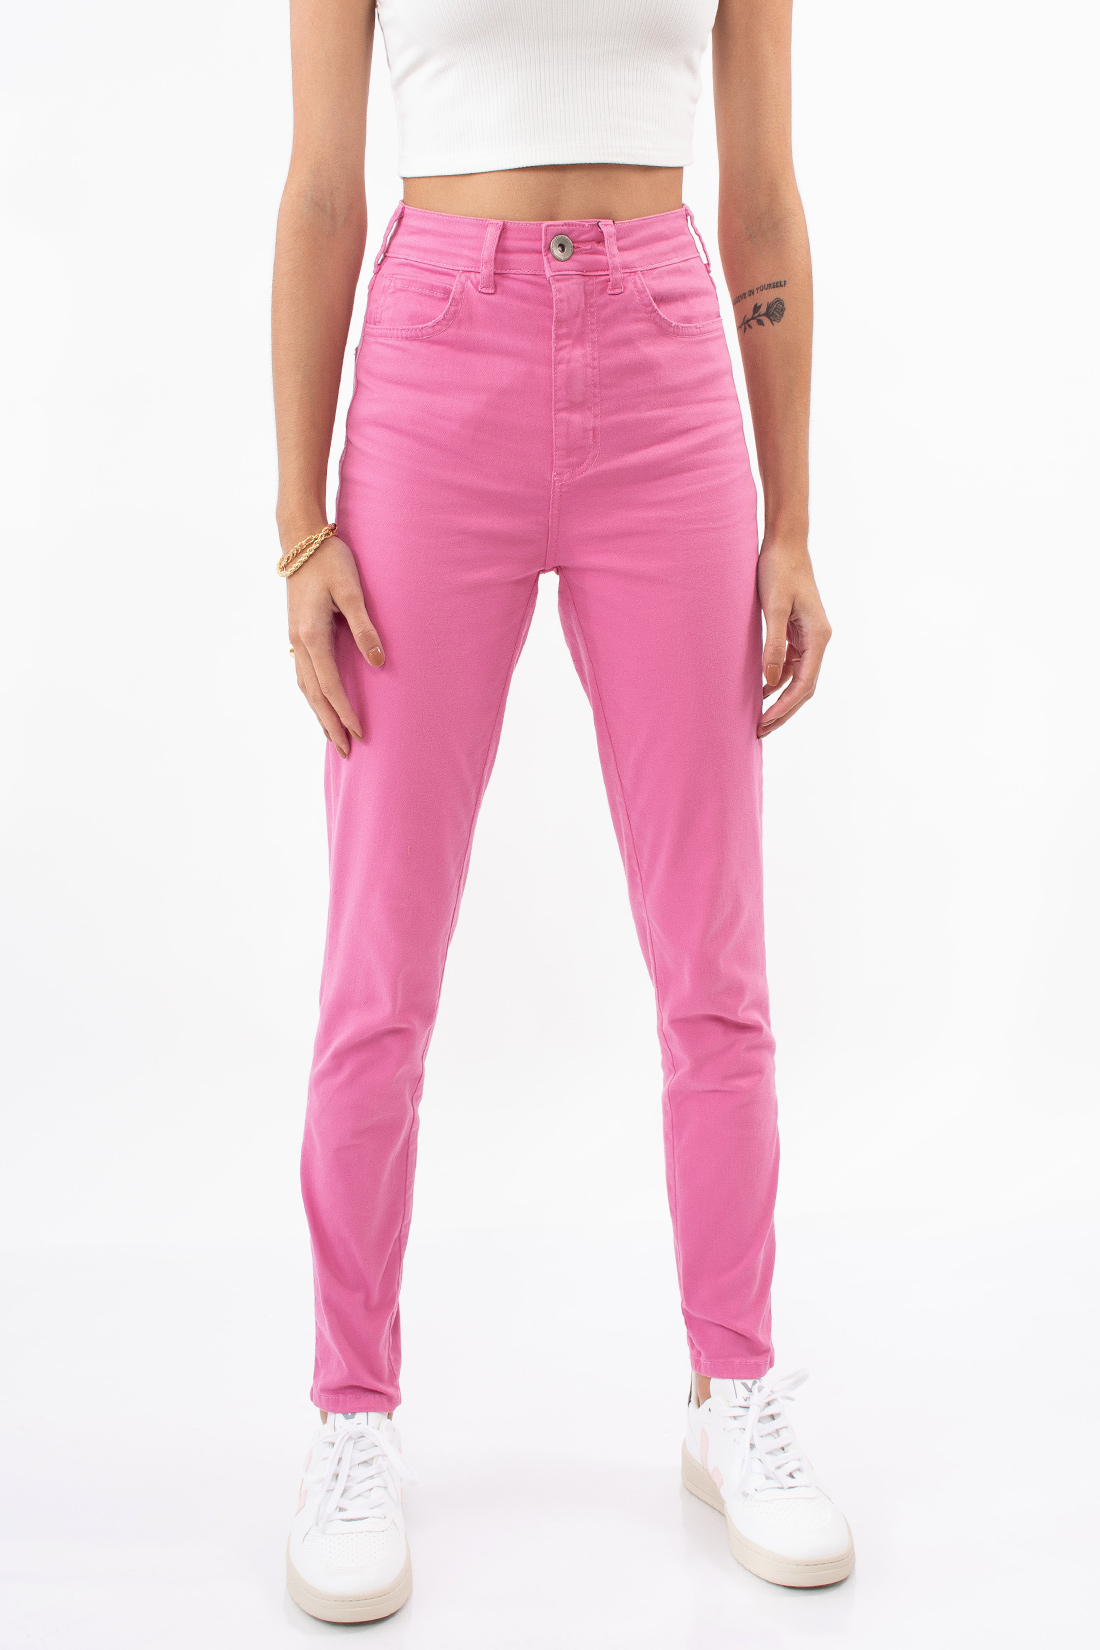 Calca Color Colcci Bruna Stretch